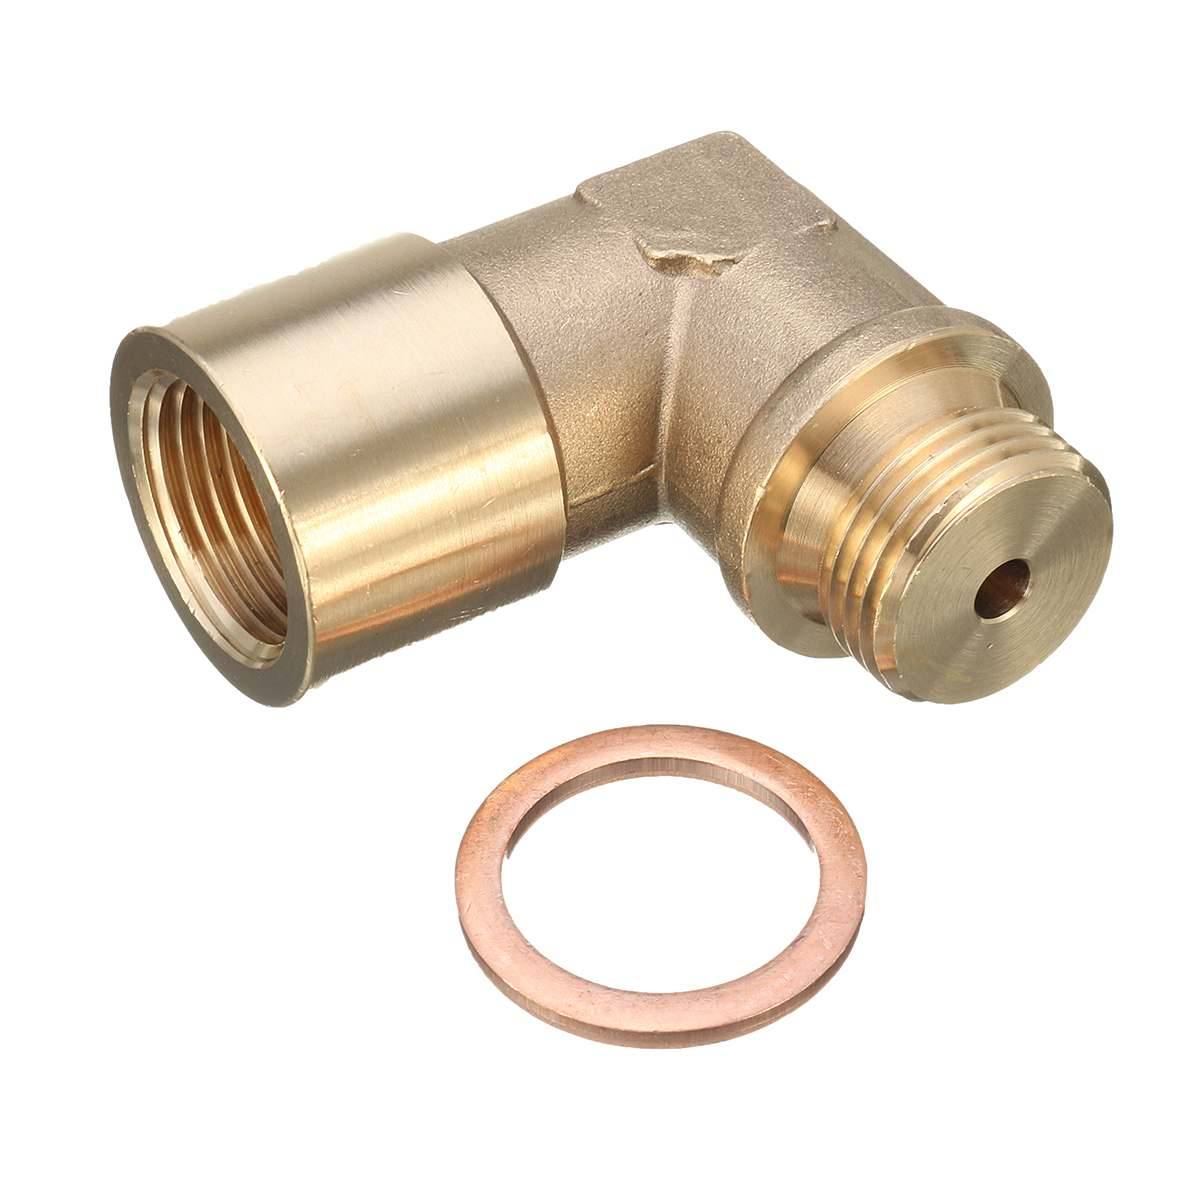 M18X1.5 O2 Angled Oxygen Sensor Lambda Extension Spacer Brass For Decat /HydrogenM18X1.5 O2 Angled Oxygen Sensor Lambda Extension Spacer Brass For Decat /Hydrogen